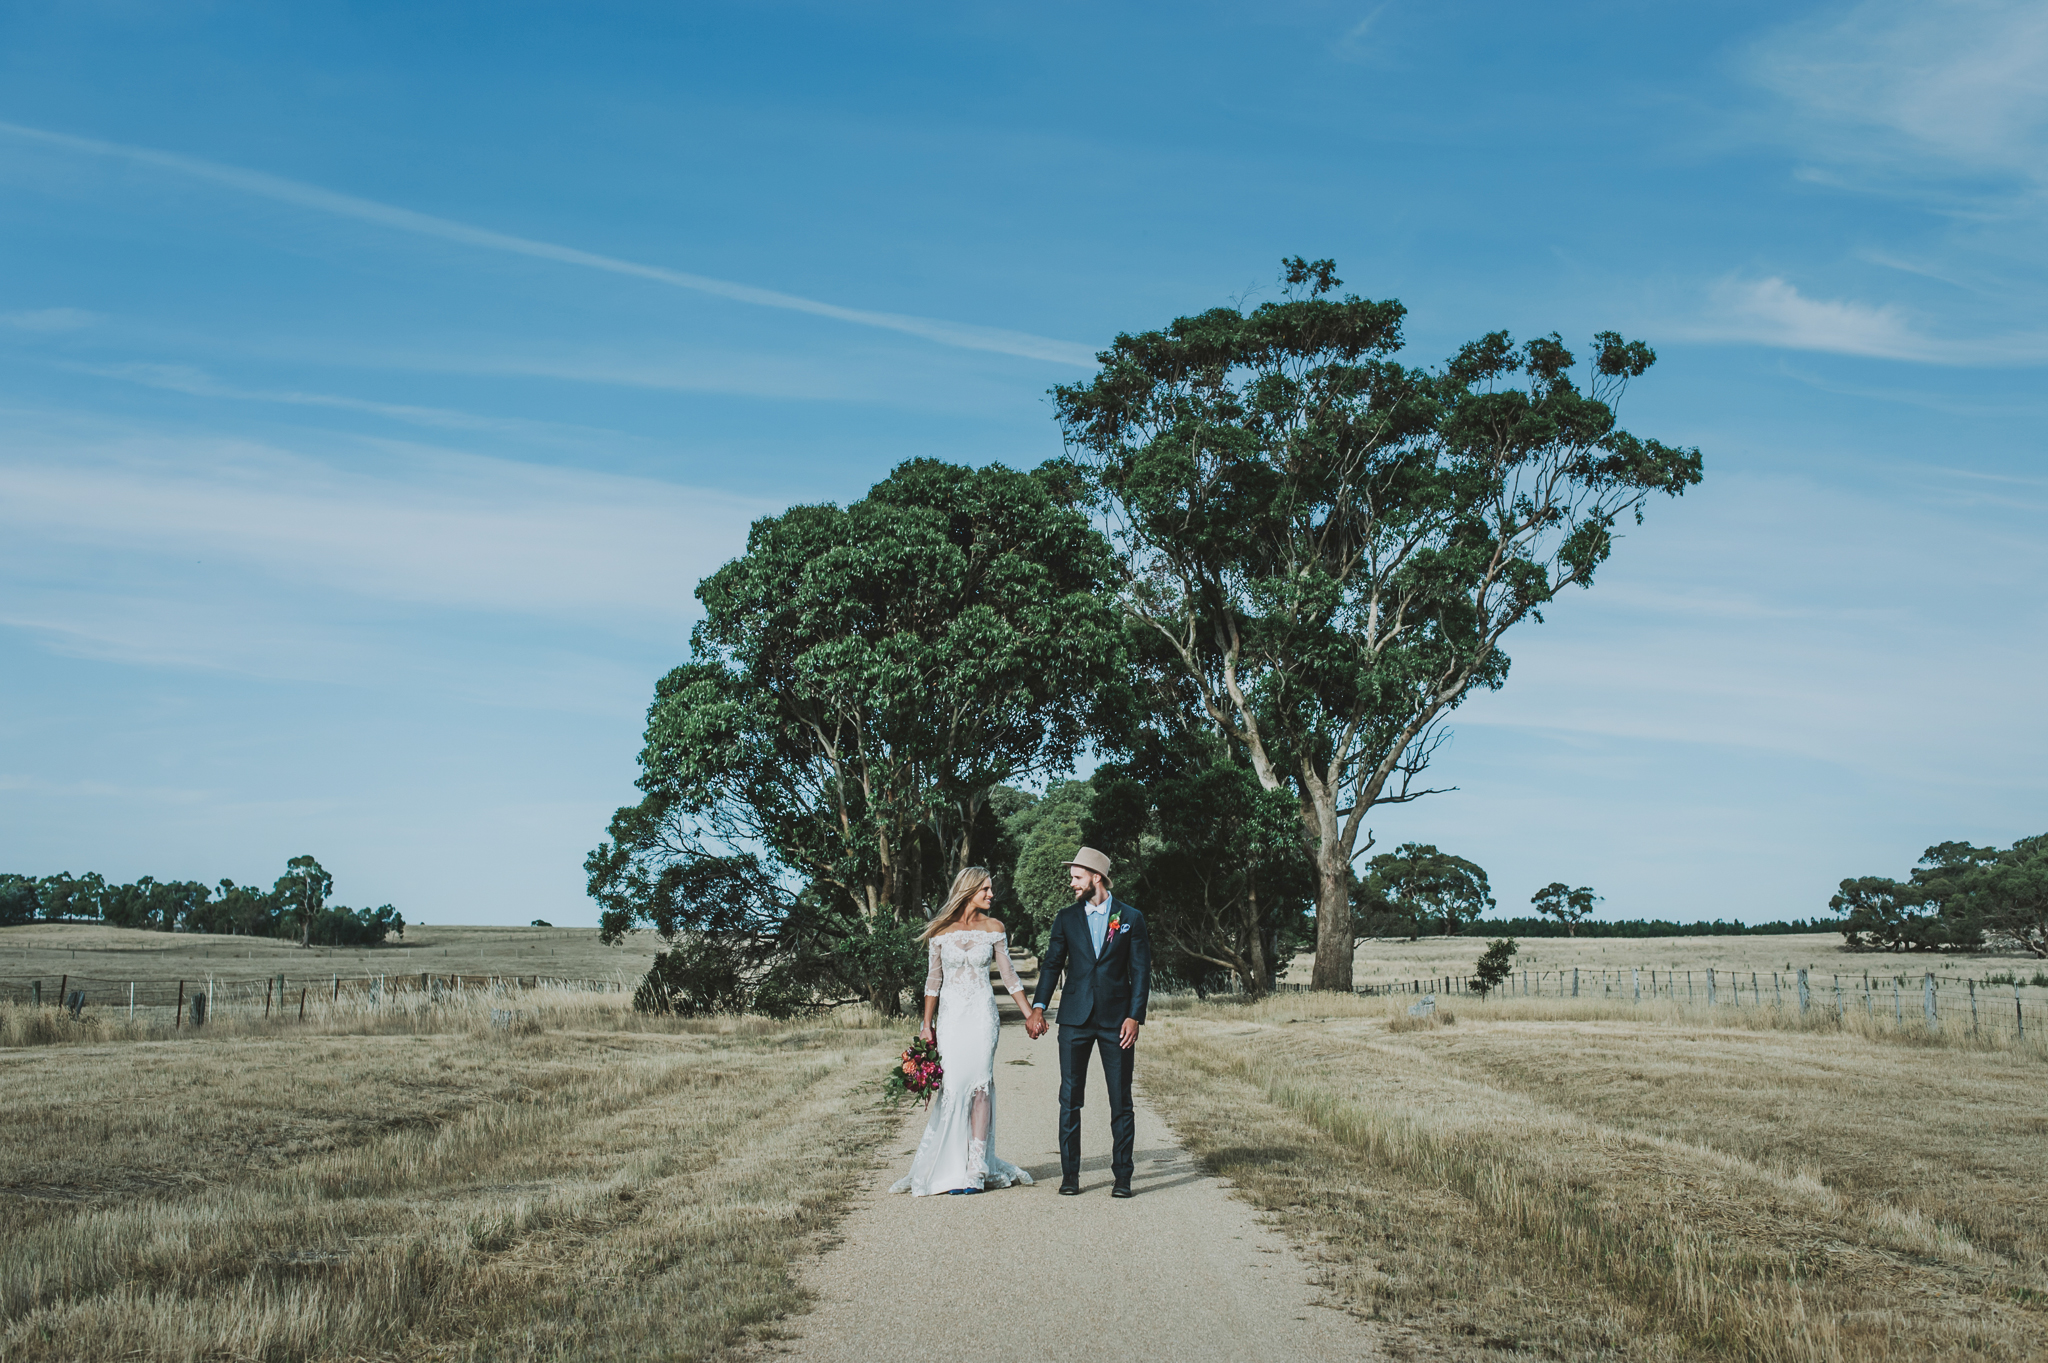 WEB Shae + Mitch Bush Festival Wedding She Takes Pictures He Makes Films Sooti Events and Styling-92.jpg